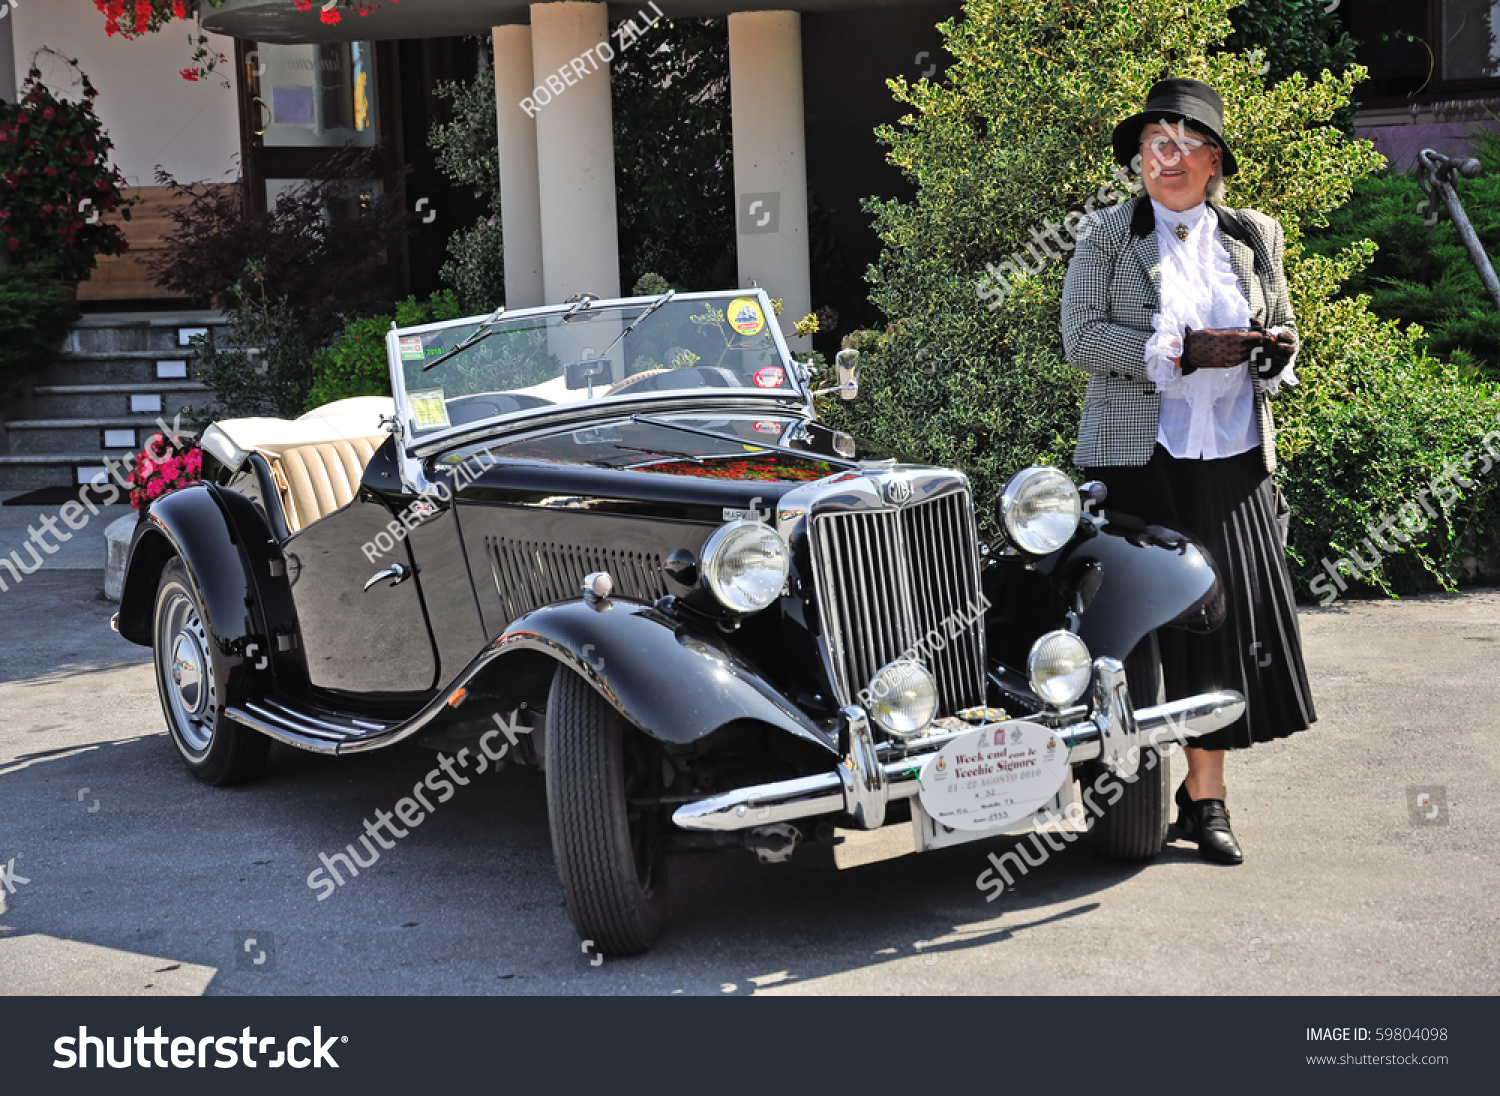 Ceva Cn August 21 Vintage Car Stock Photo (Royalty Free) 59804098 ...